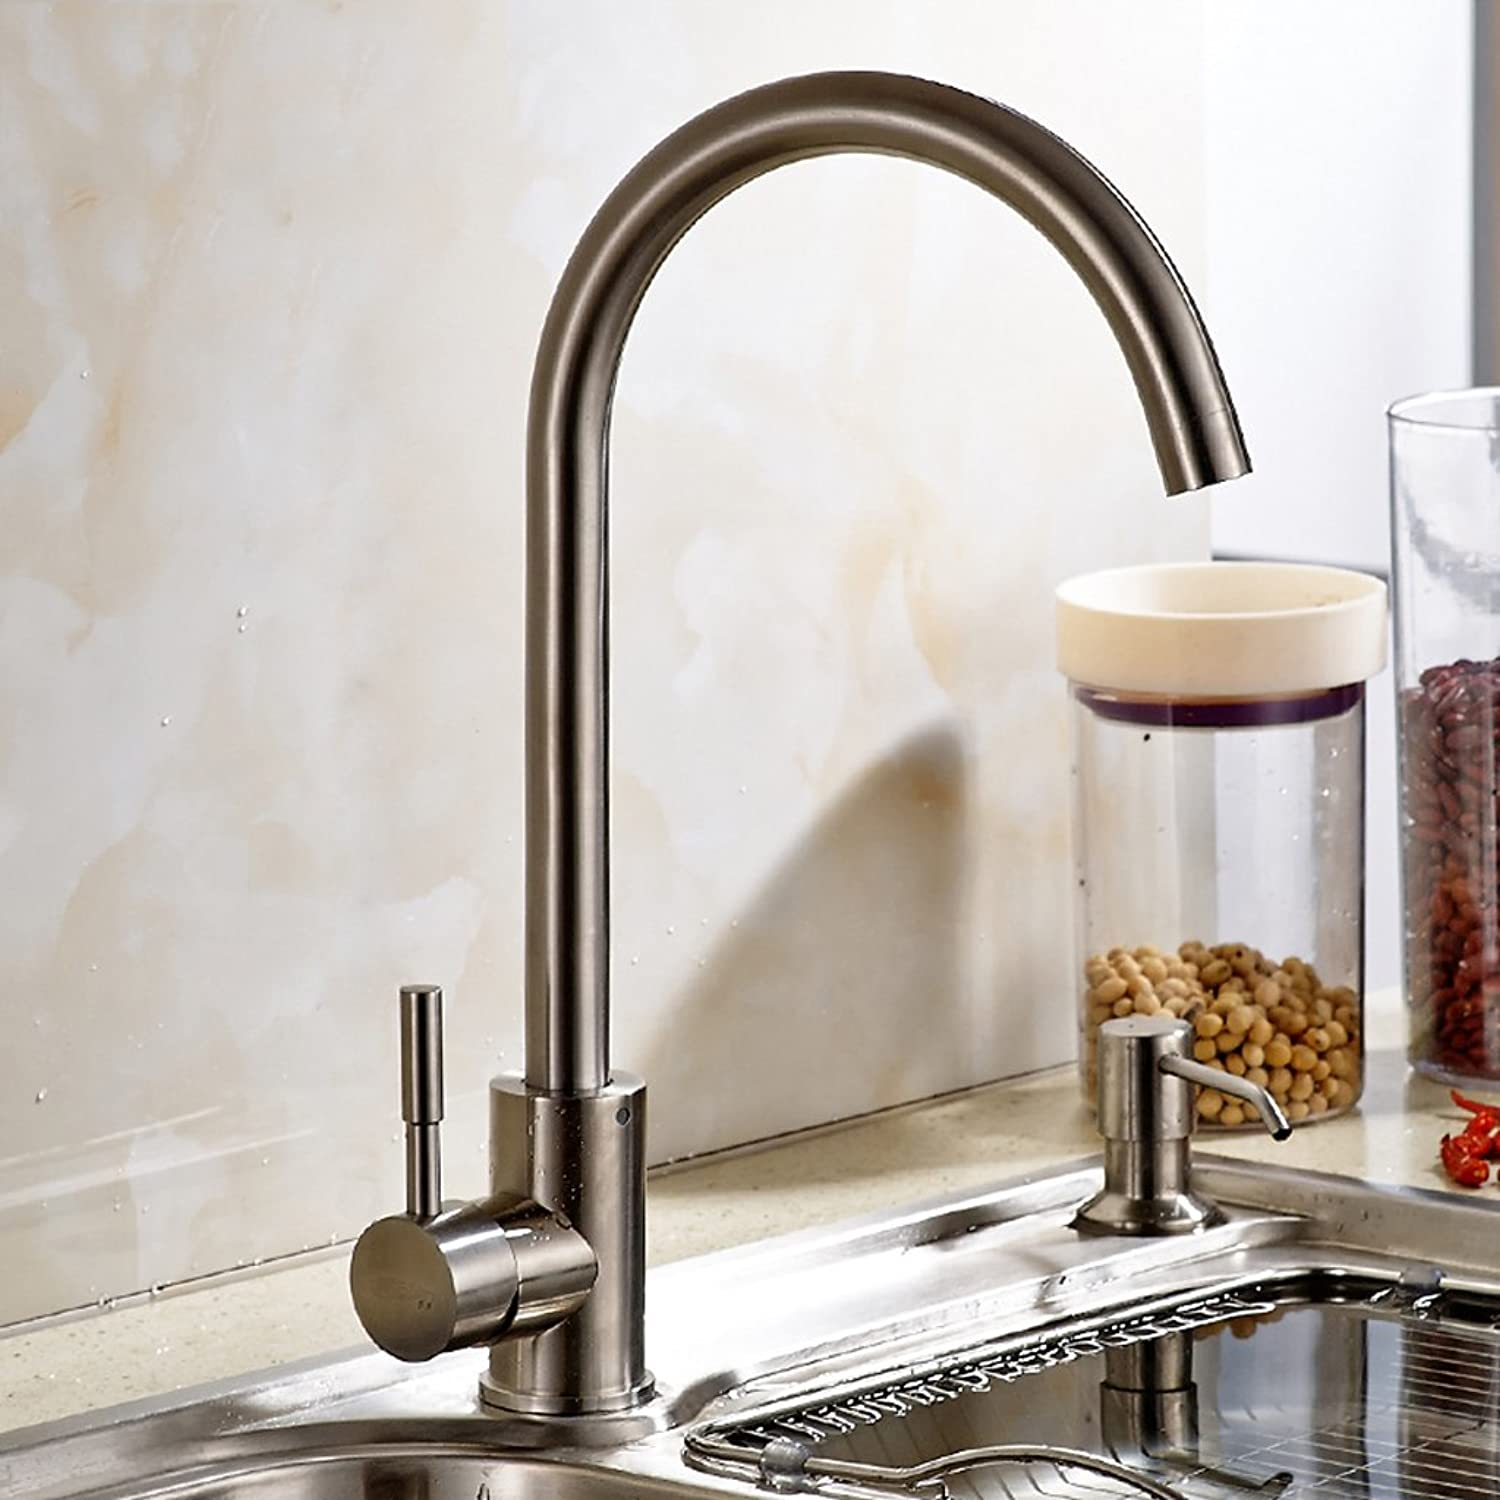 Kitchen hot and cold water faucet stainless steel dishwashing dishes pots sinks can be redated vegetable pool faucet